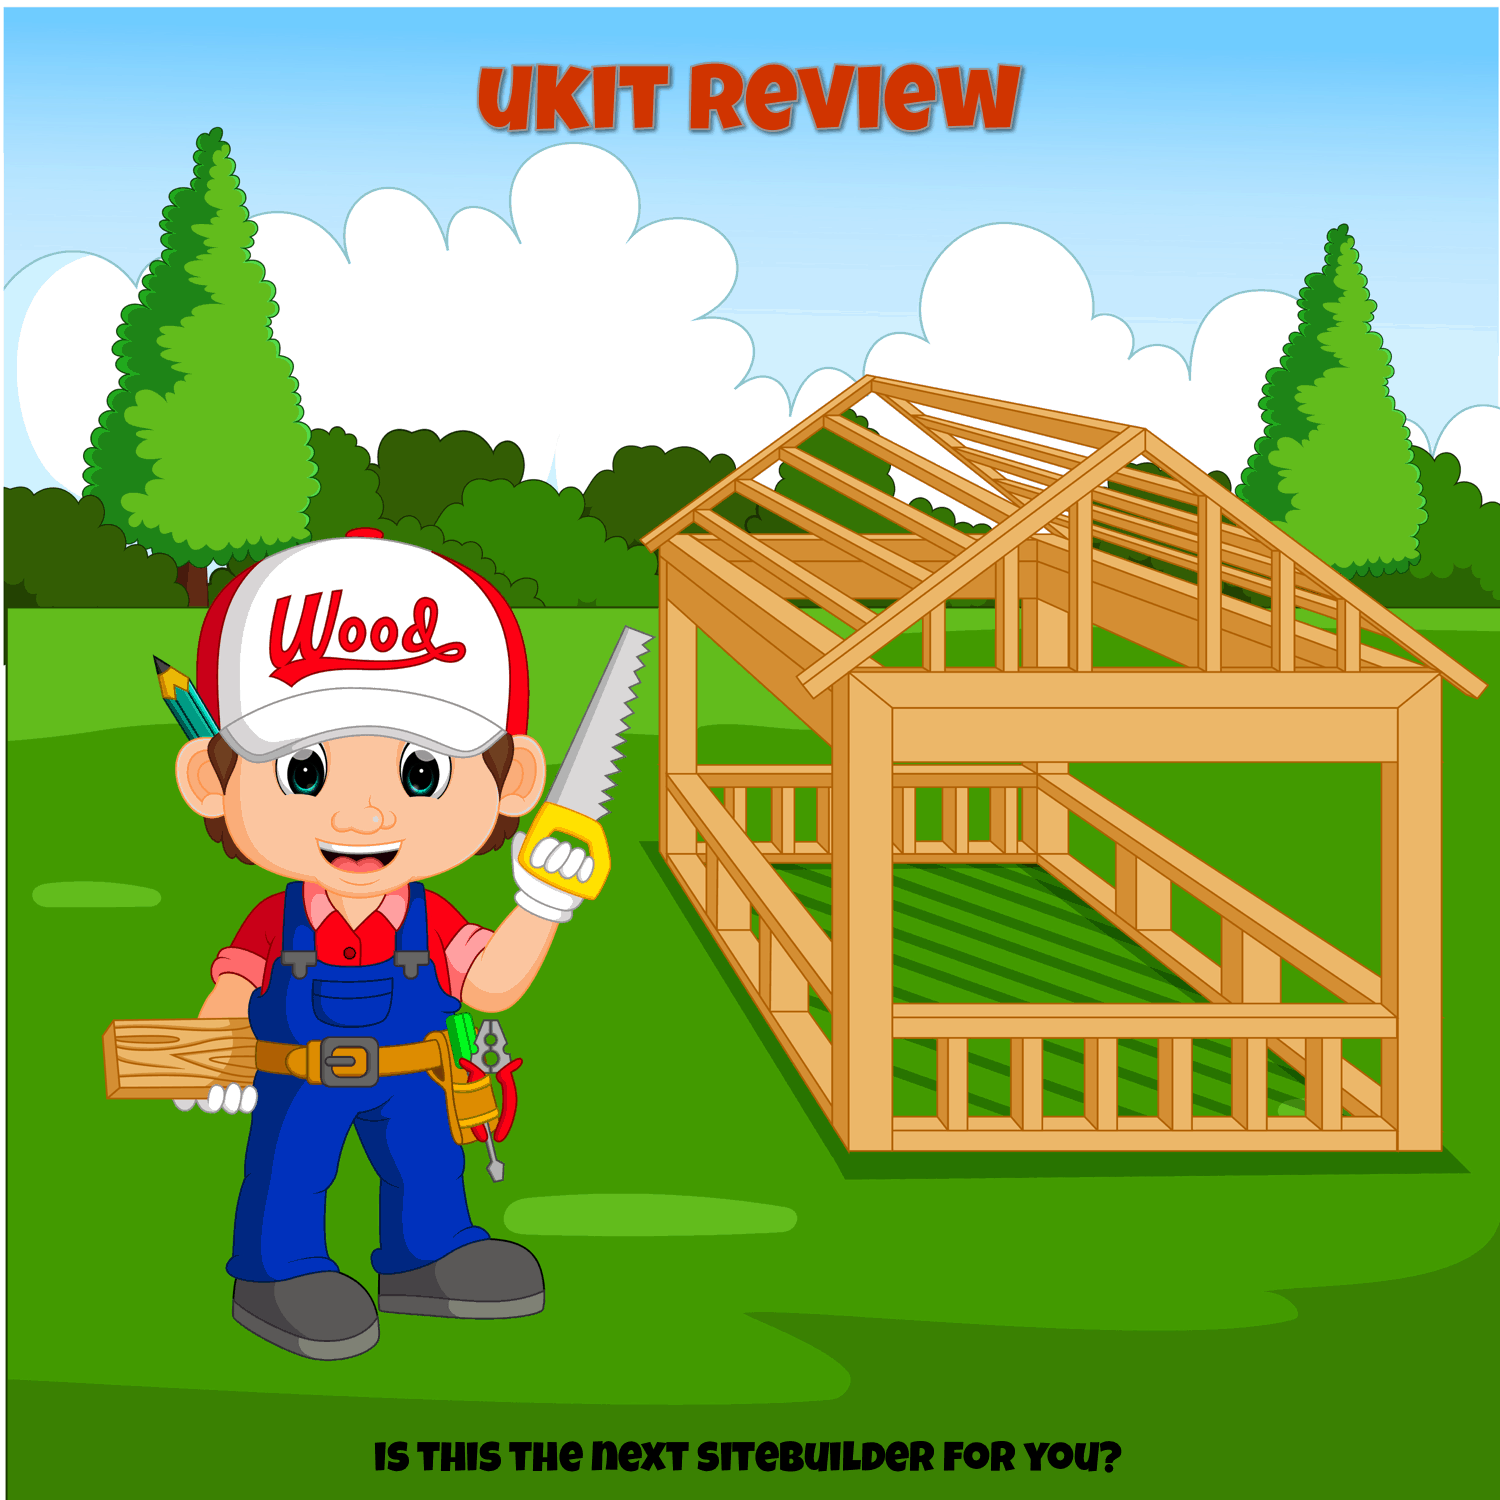 ukit review